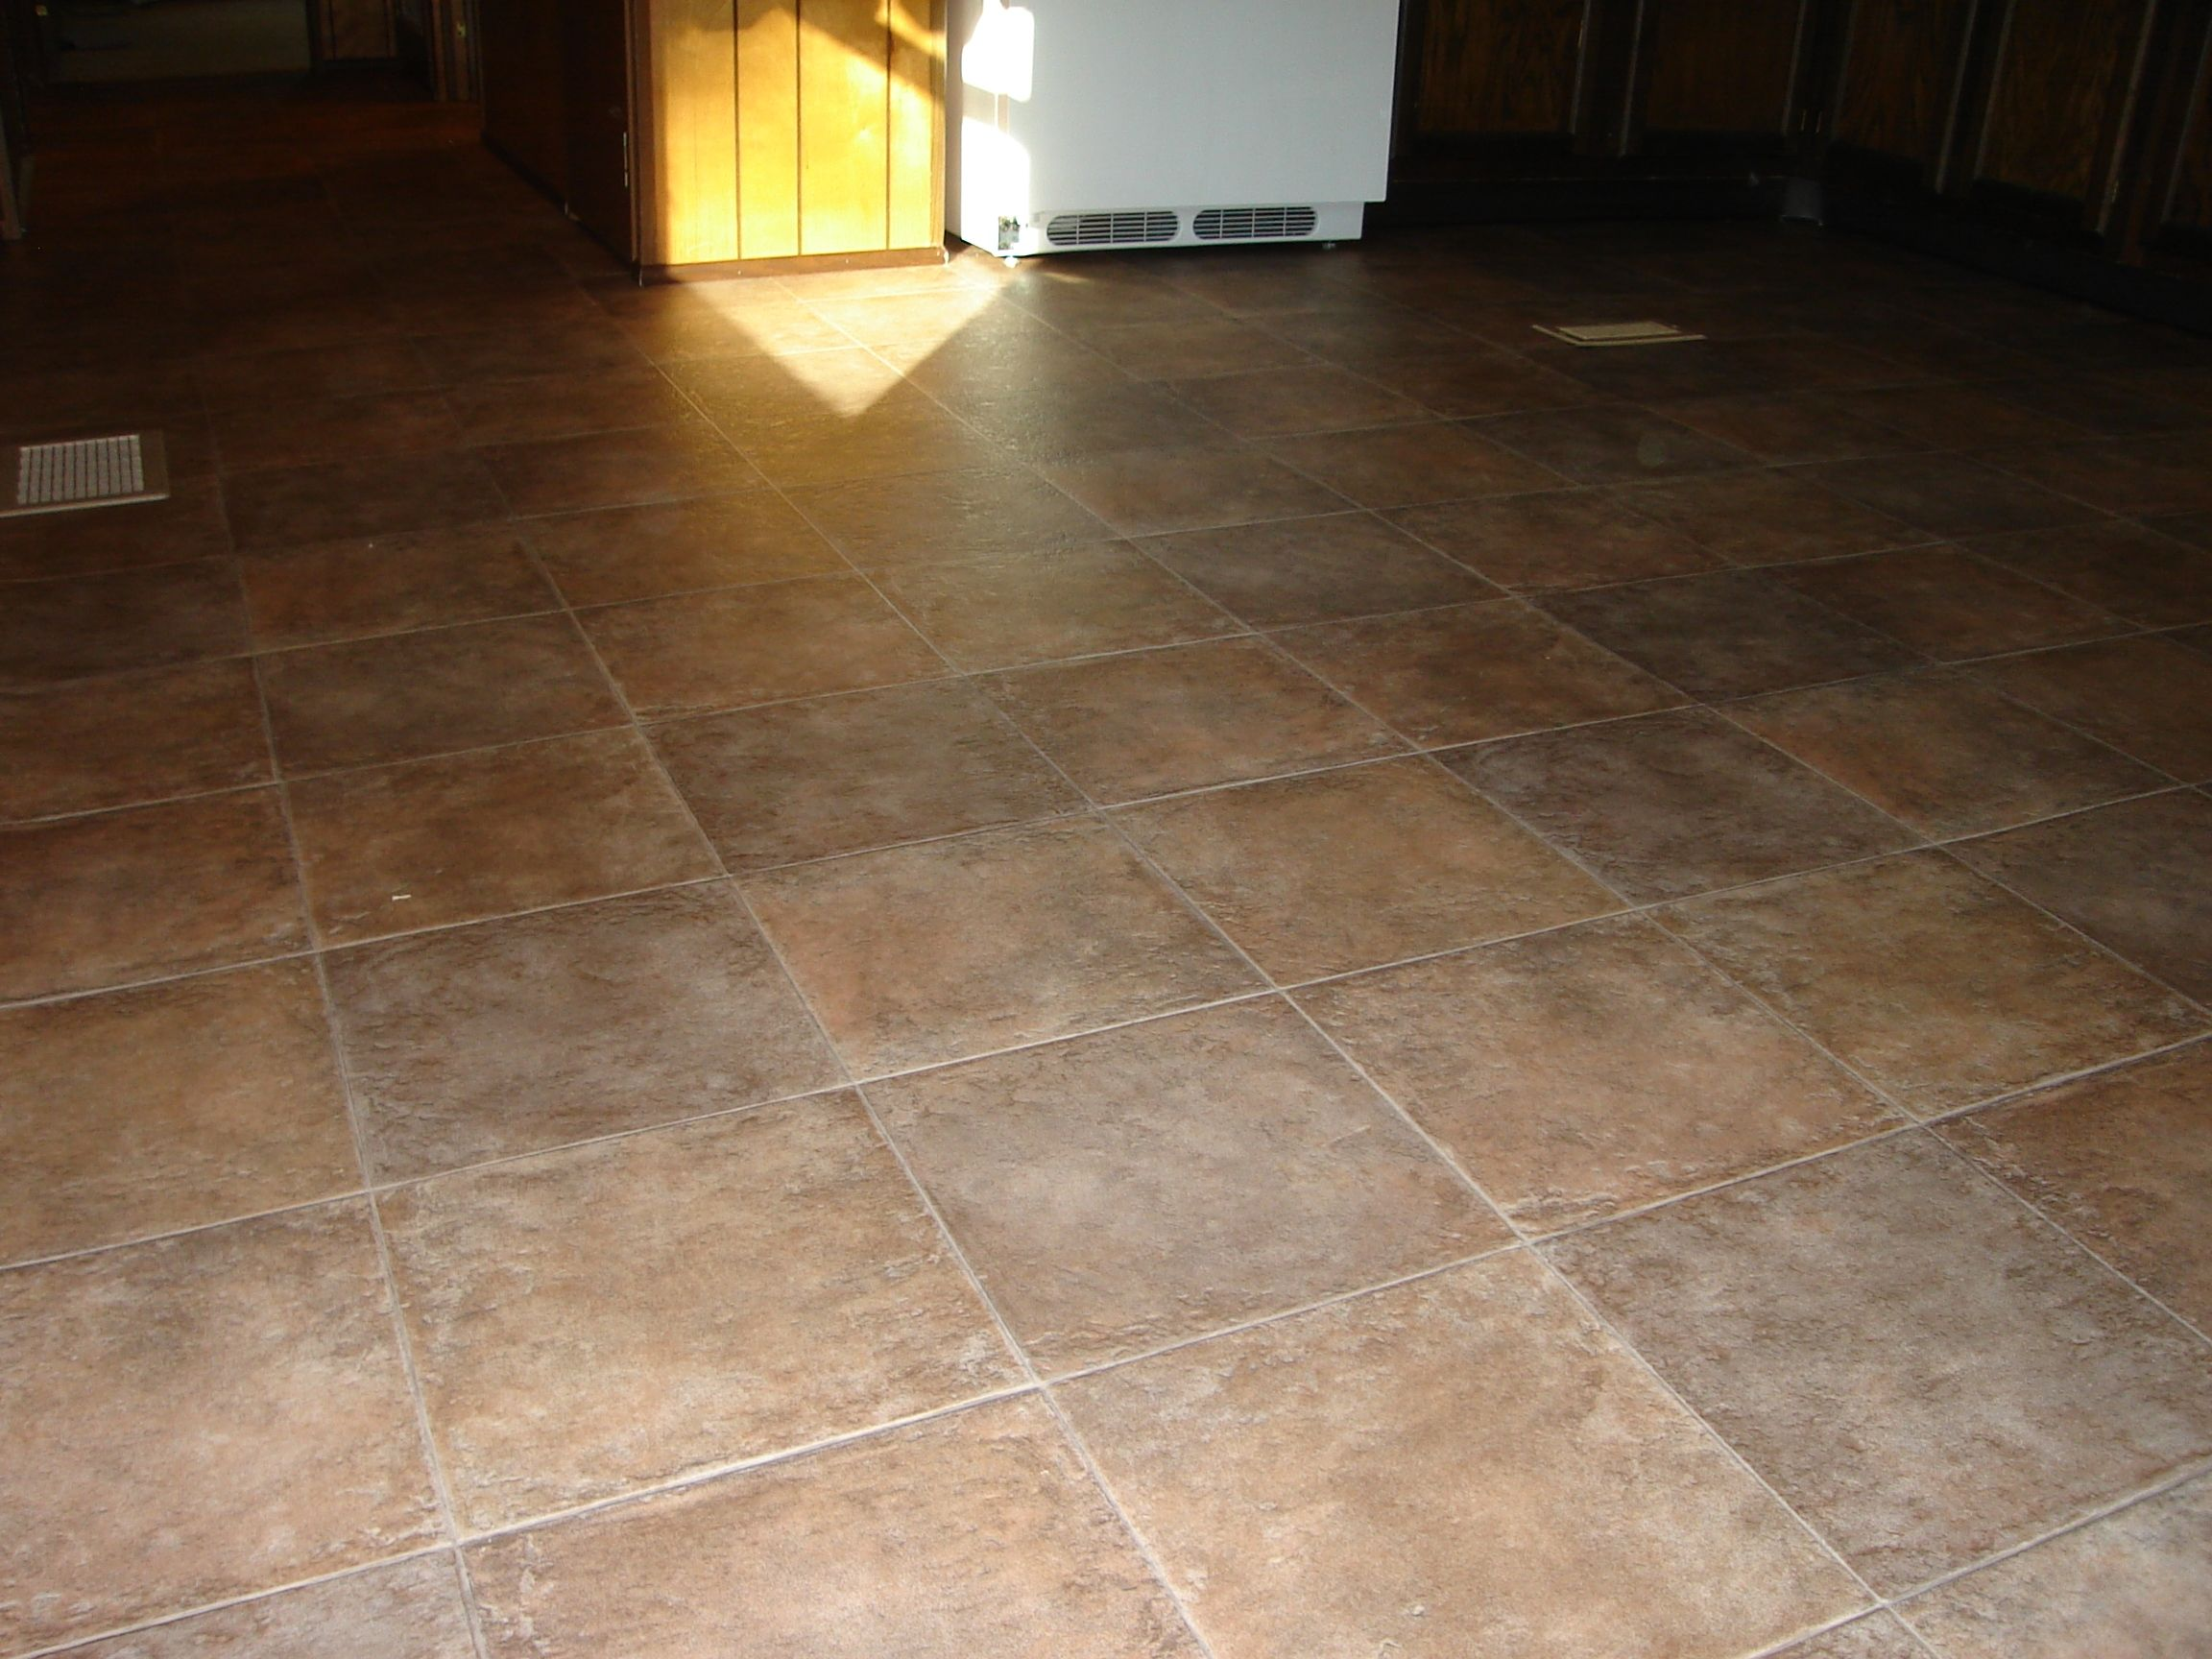 Interlocking Vinyl Floor Tiles Kitchen Tile Floor Vinyl